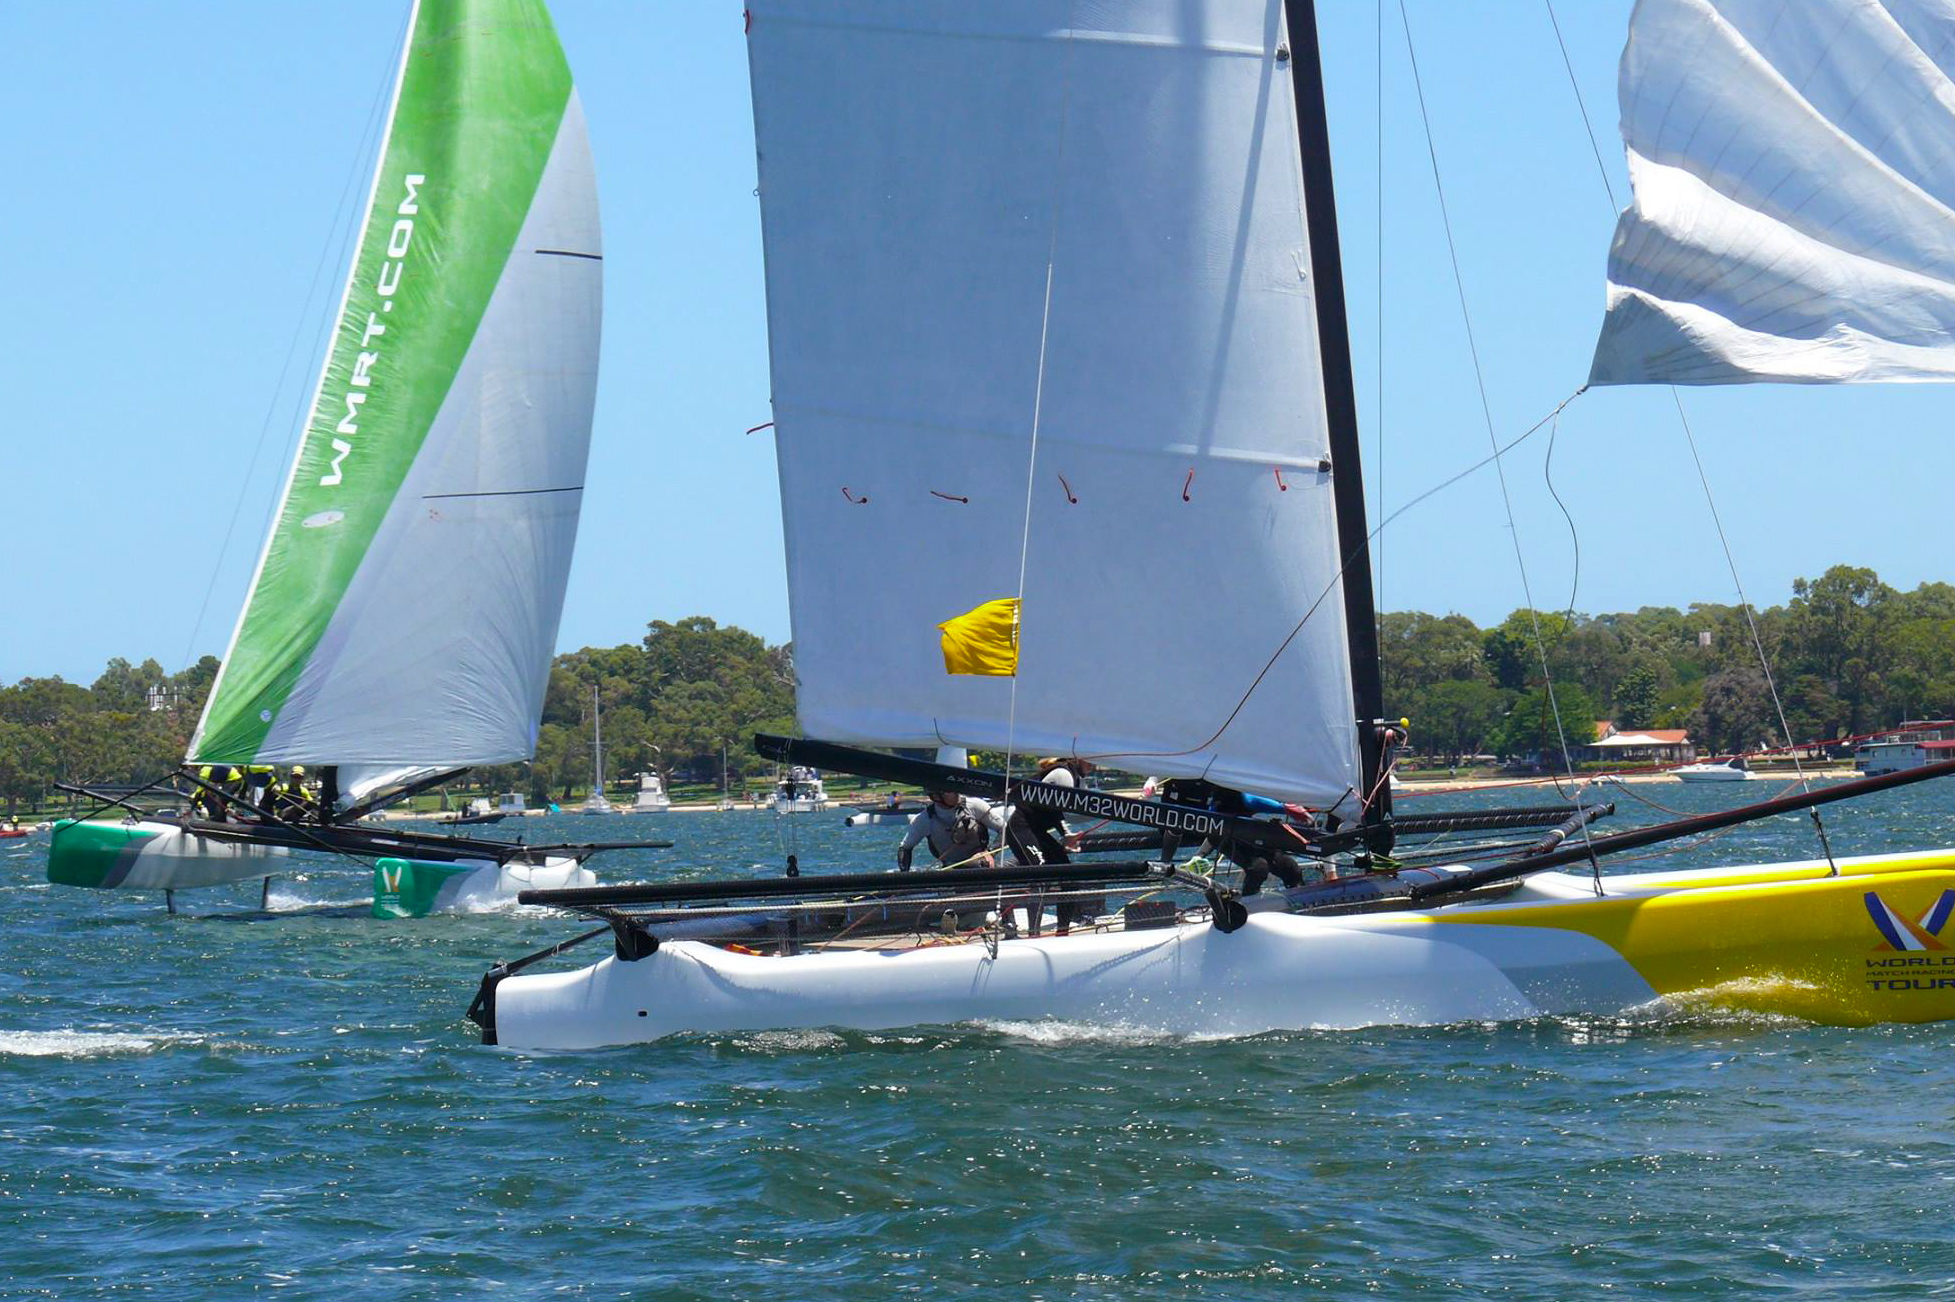 Kiwis Lead The Foreign Attack At WMRT Swan River Match Cup